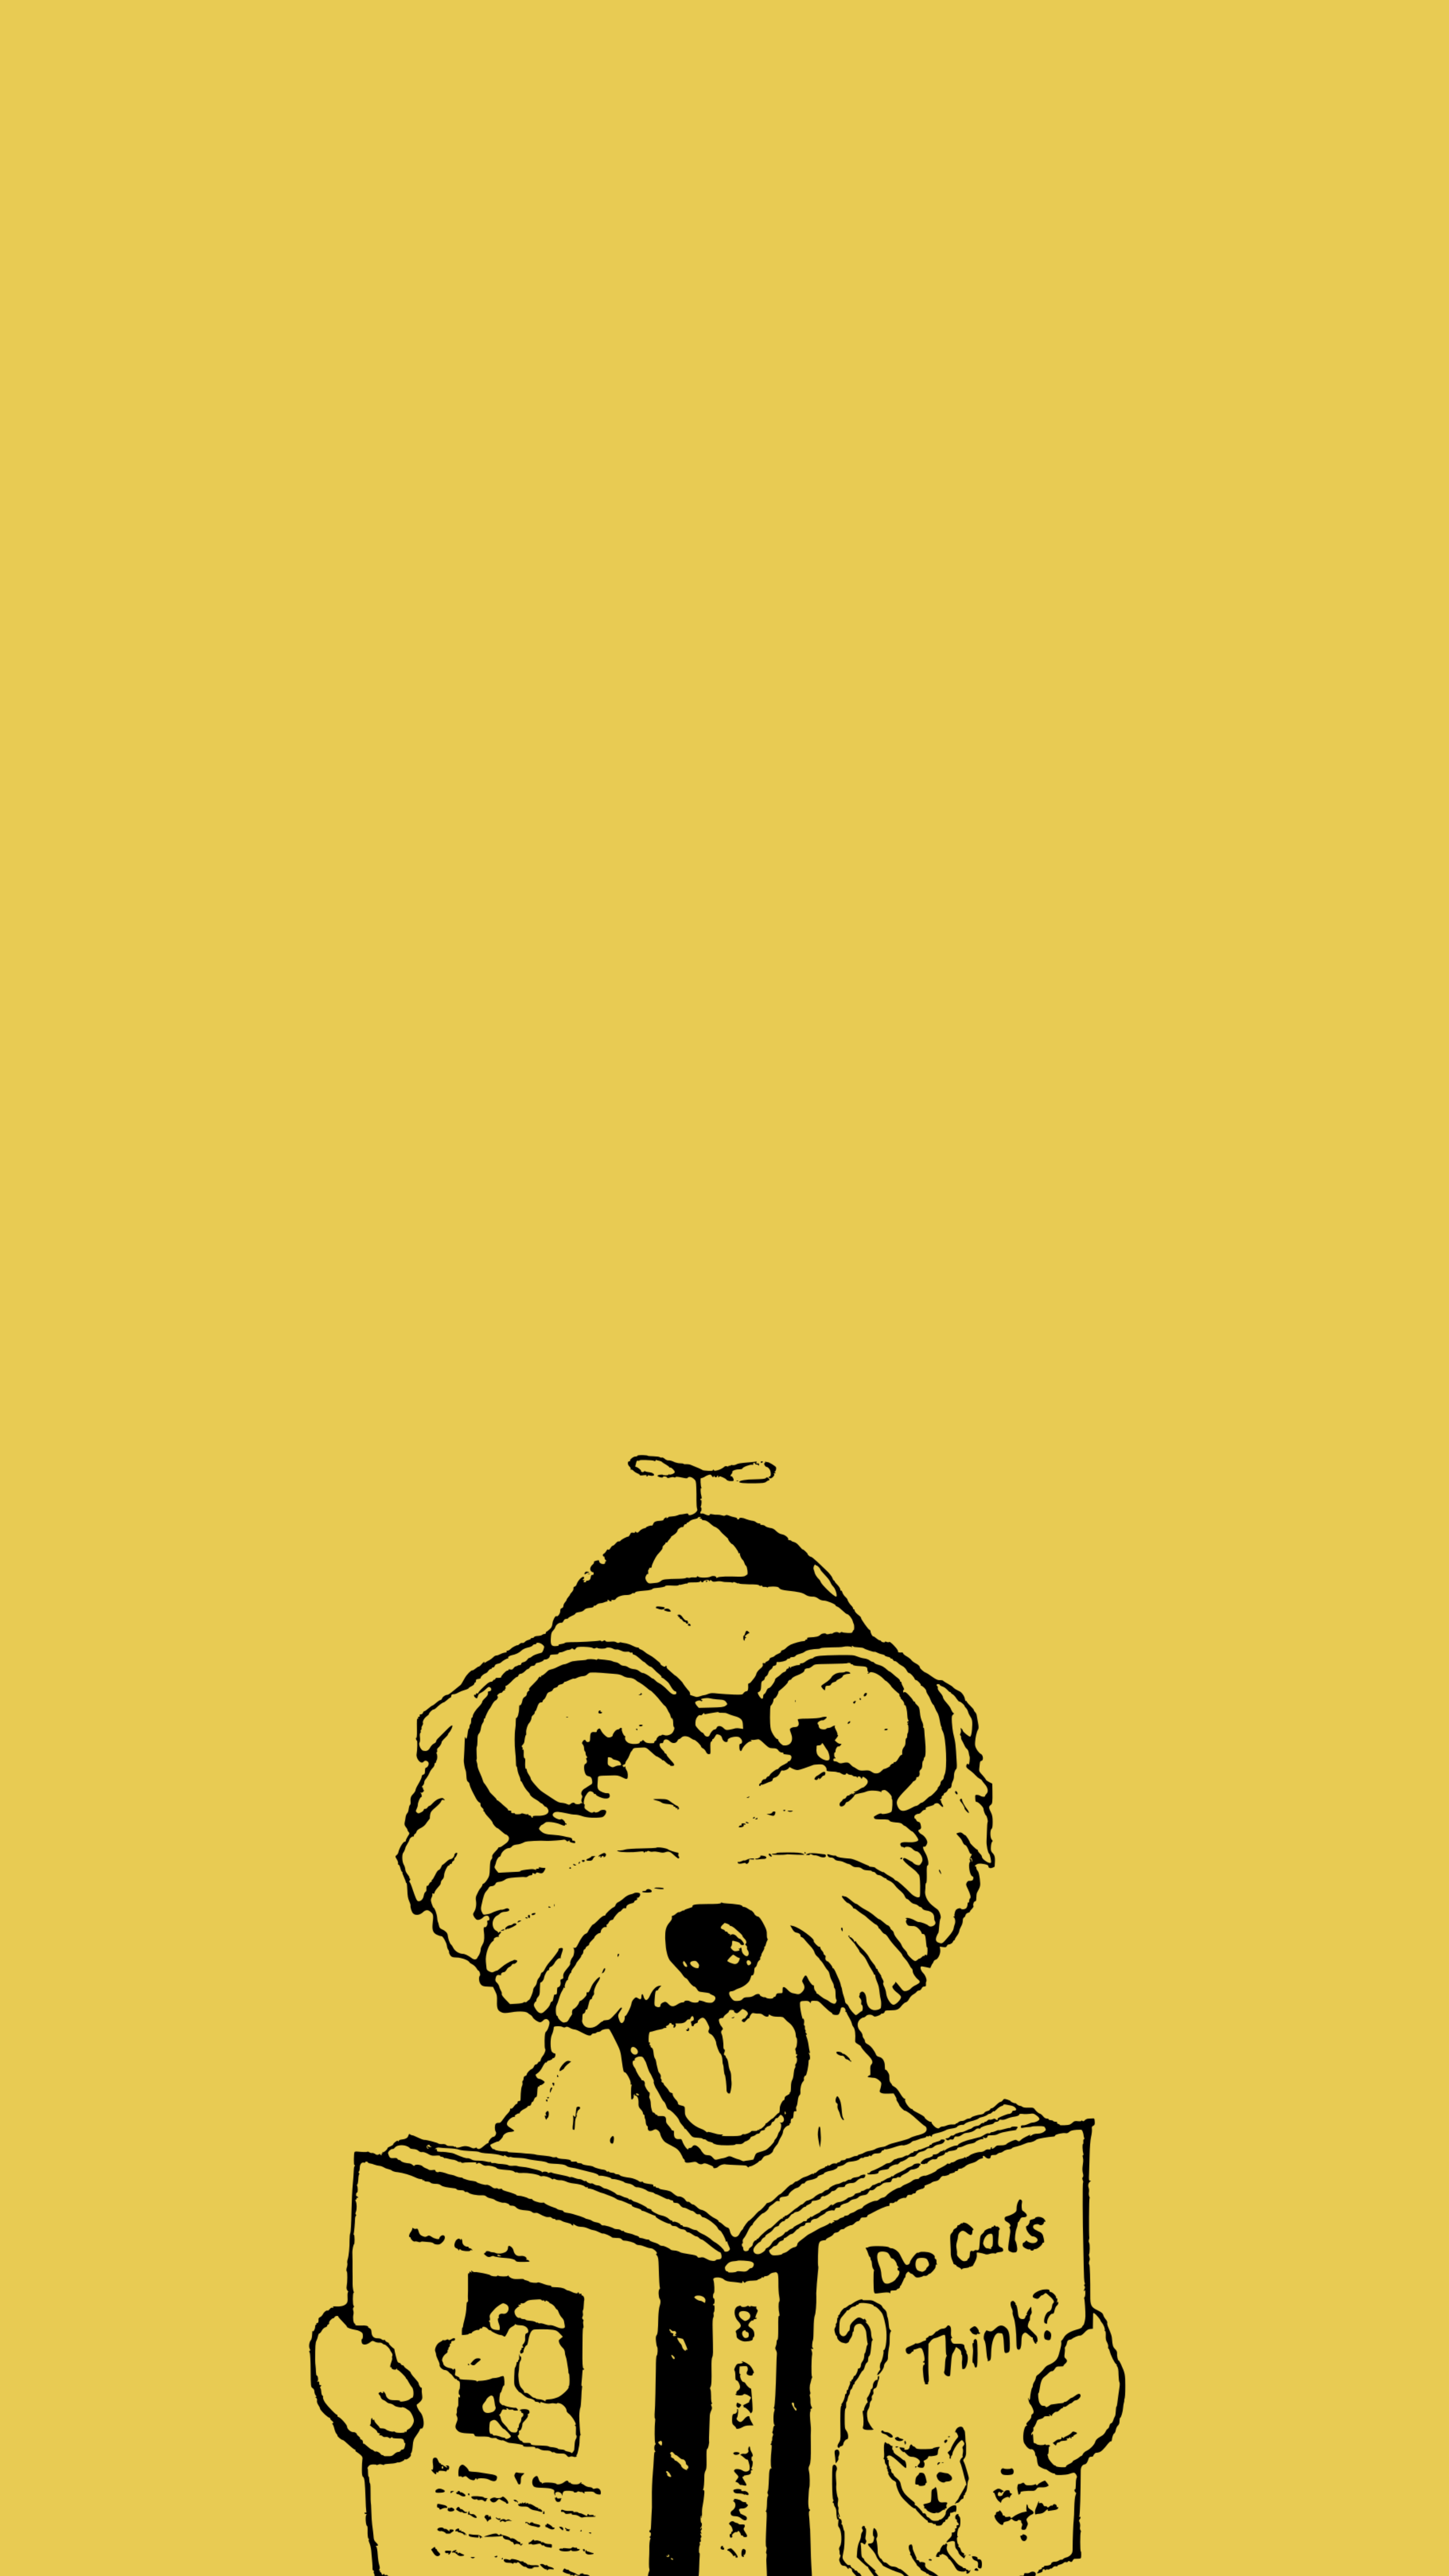 53356 download wallpaper Vector, Dog, Book, Funny, Art screensavers and pictures for free